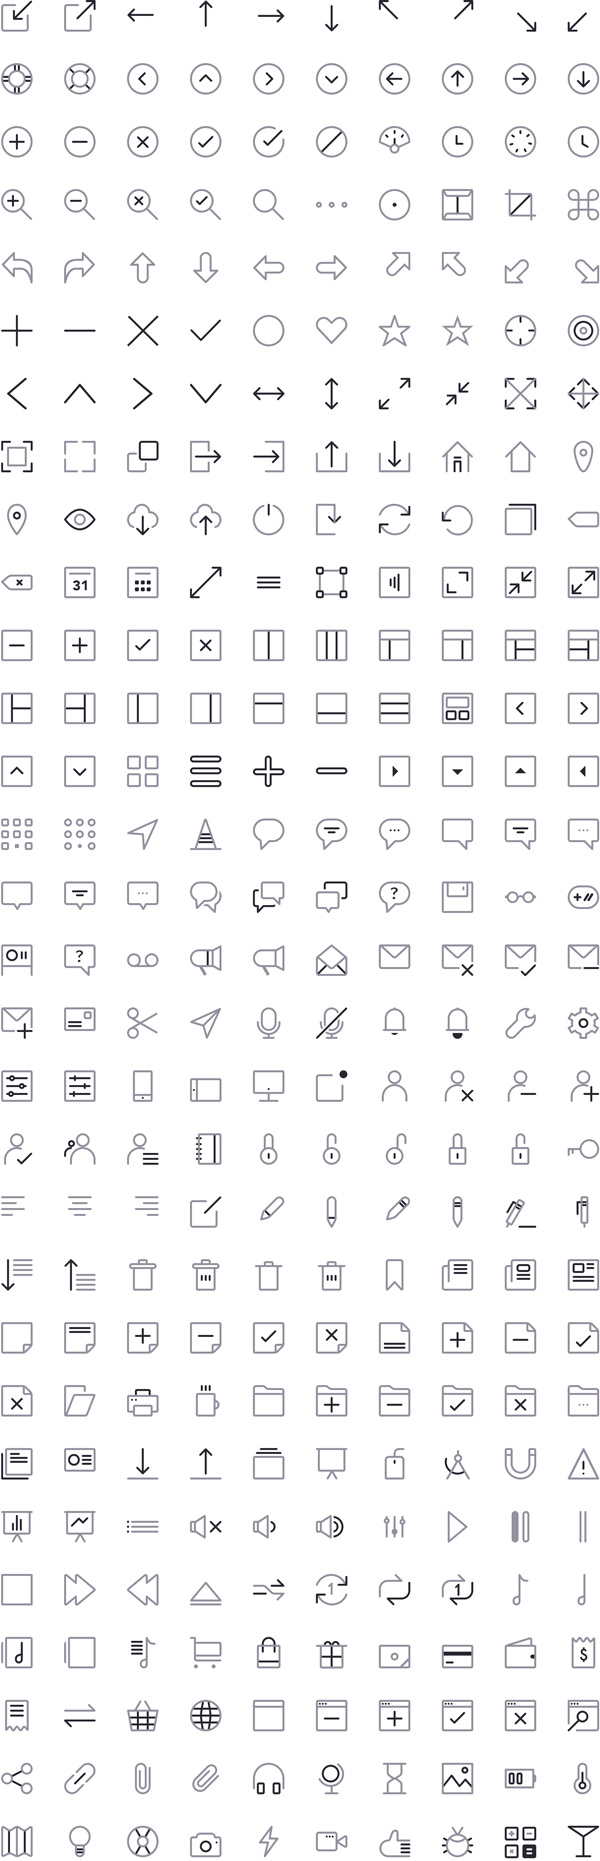 2.free sketch icons